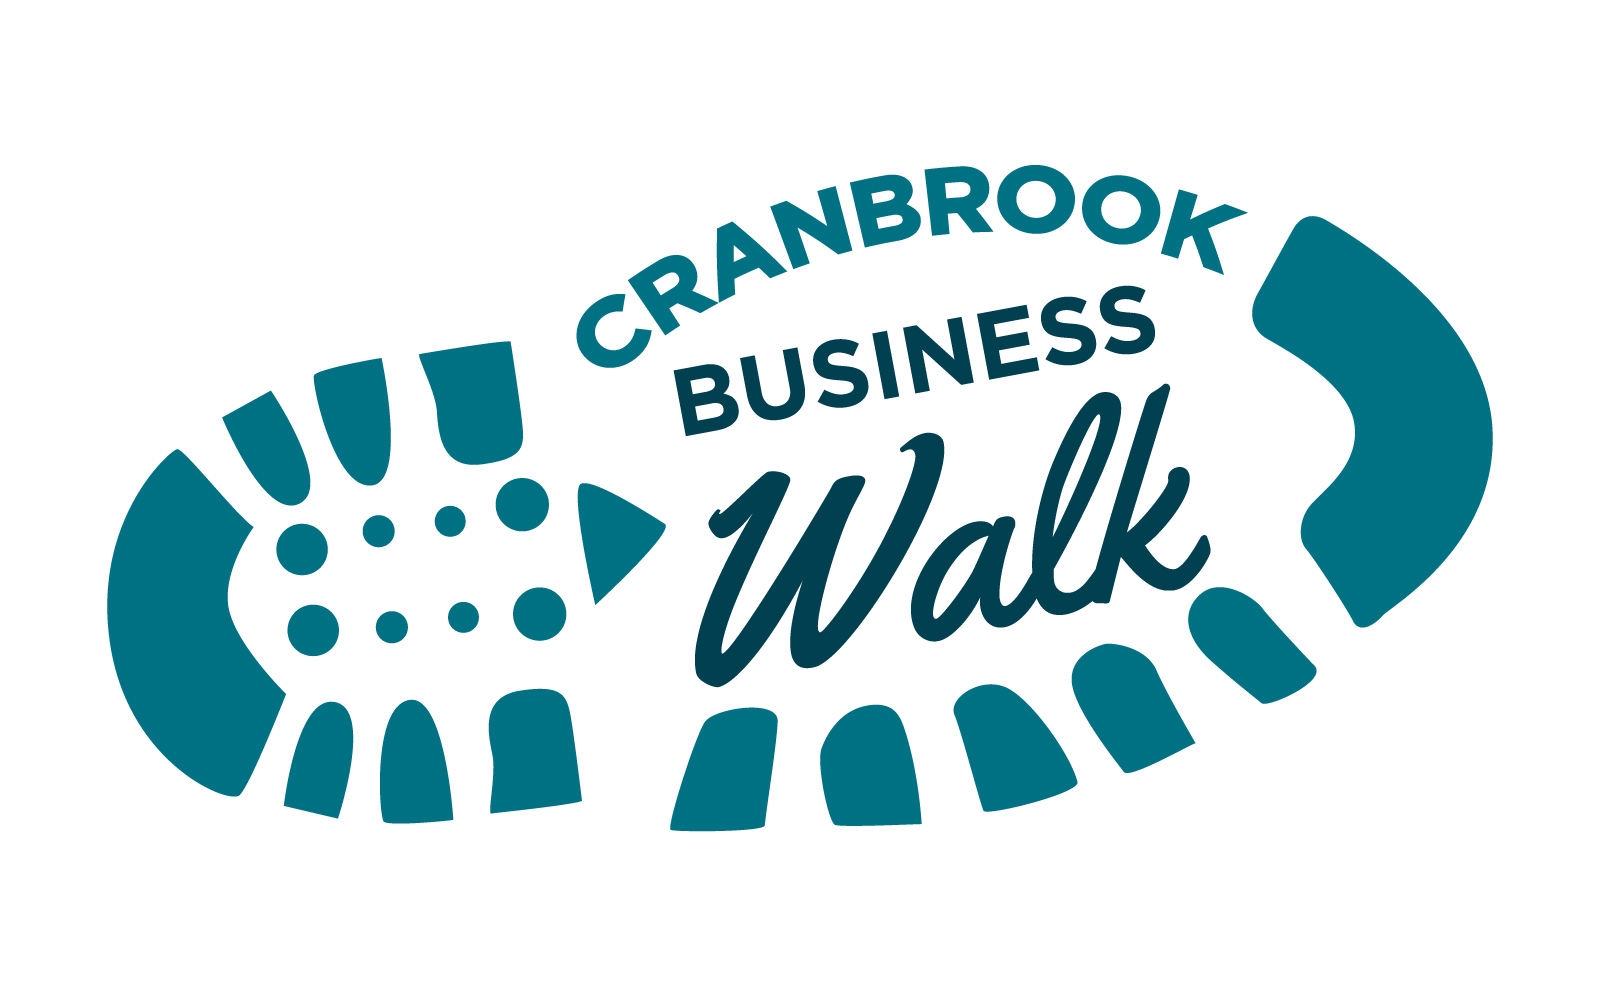 Business is good in Cranbrook according to Chamber survey